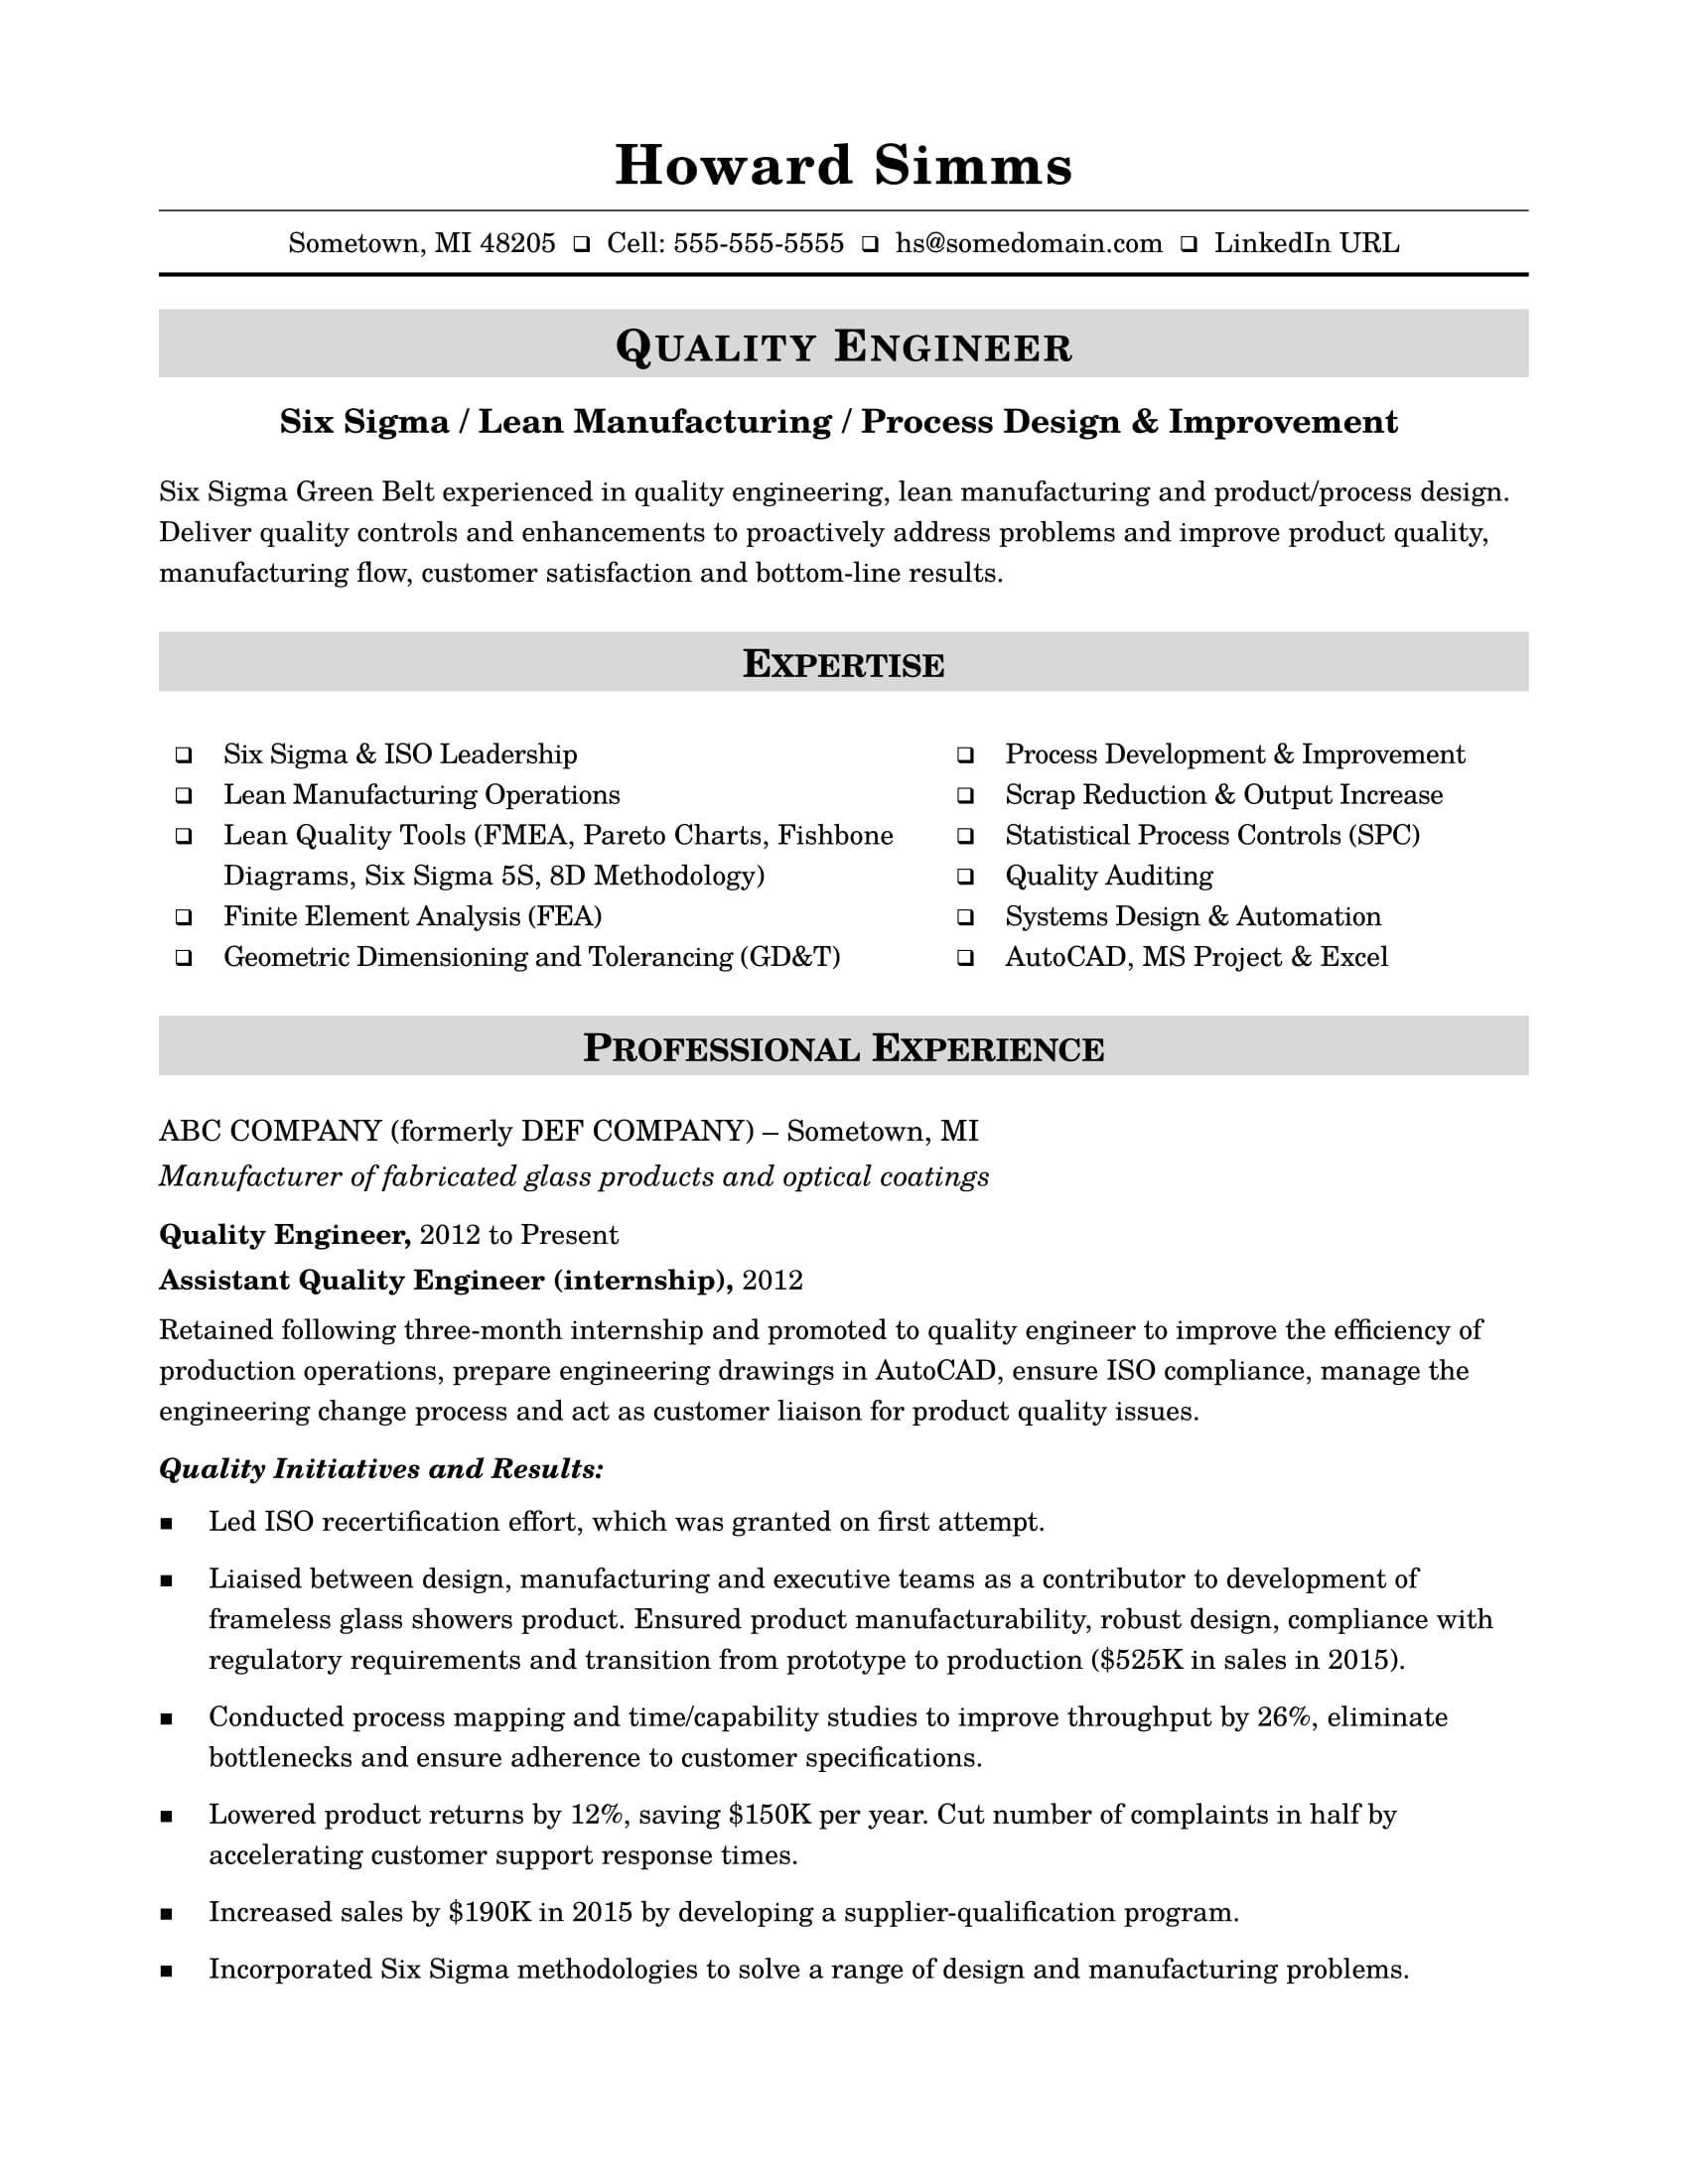 sample resume for midlevel quality engineer monster smt active examples marketing duties Resume Smt Quality Engineer Resume